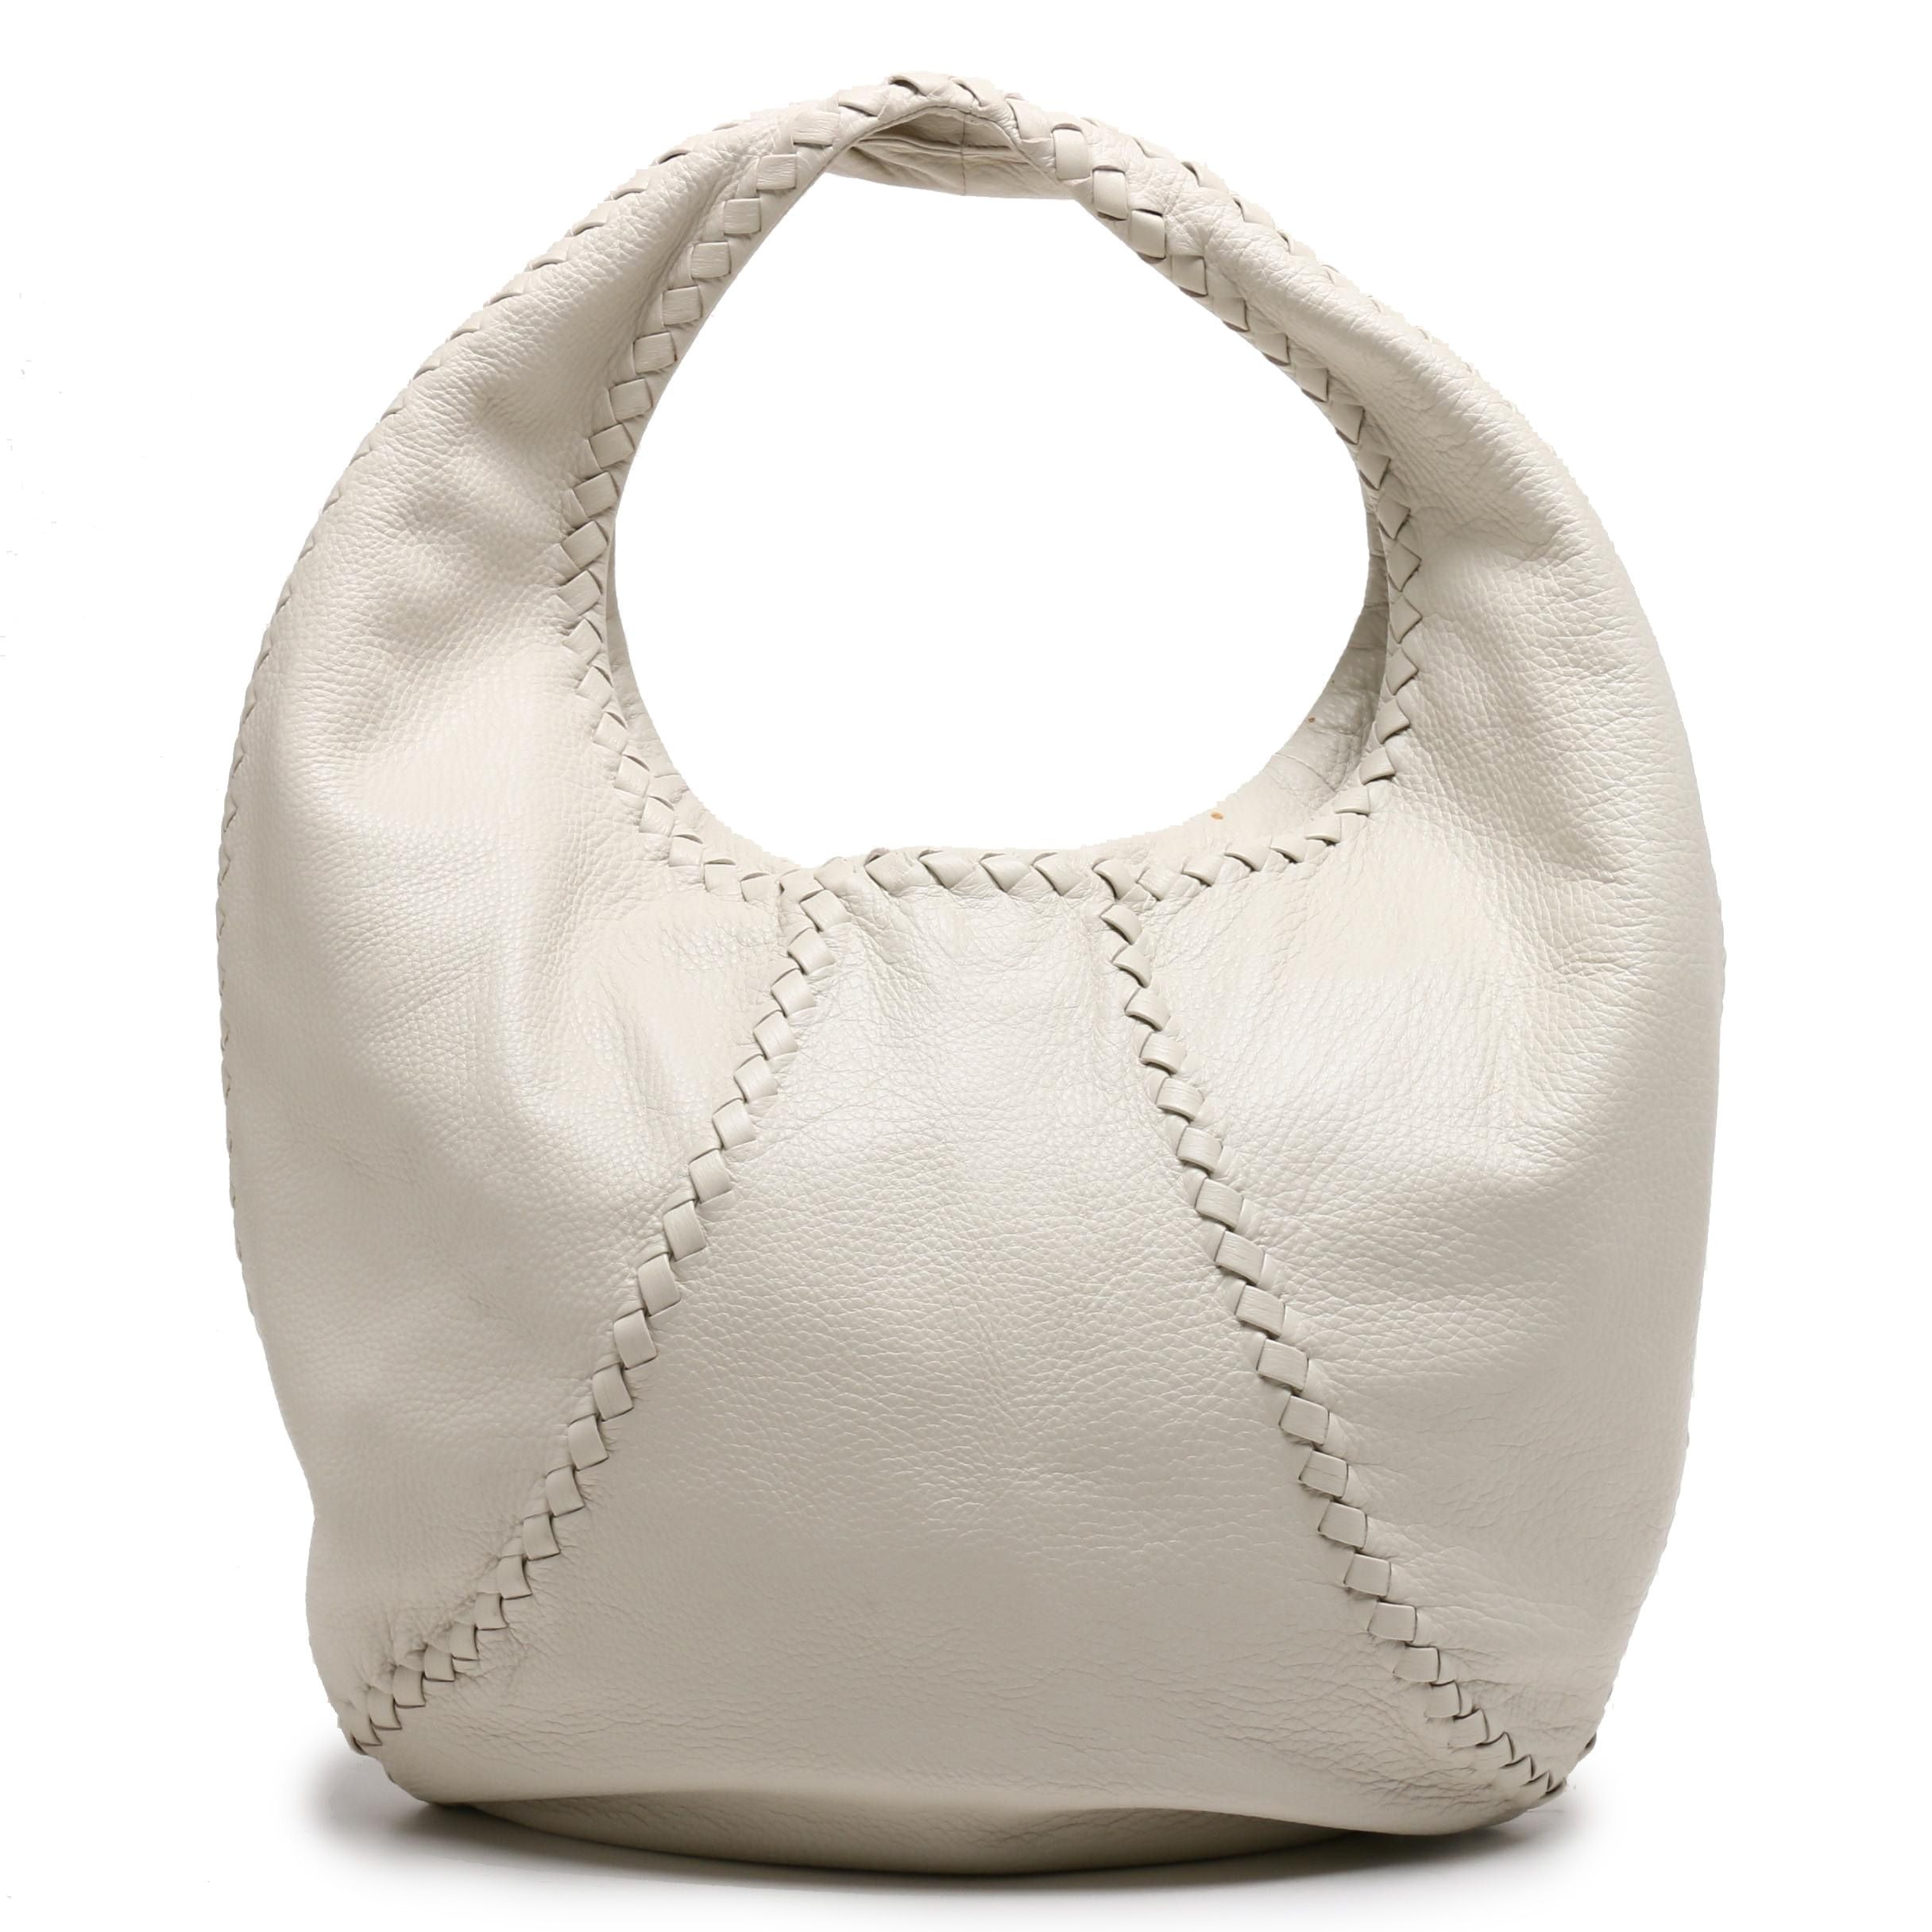 Bottega Veneta Bone Leather Hobo Bag